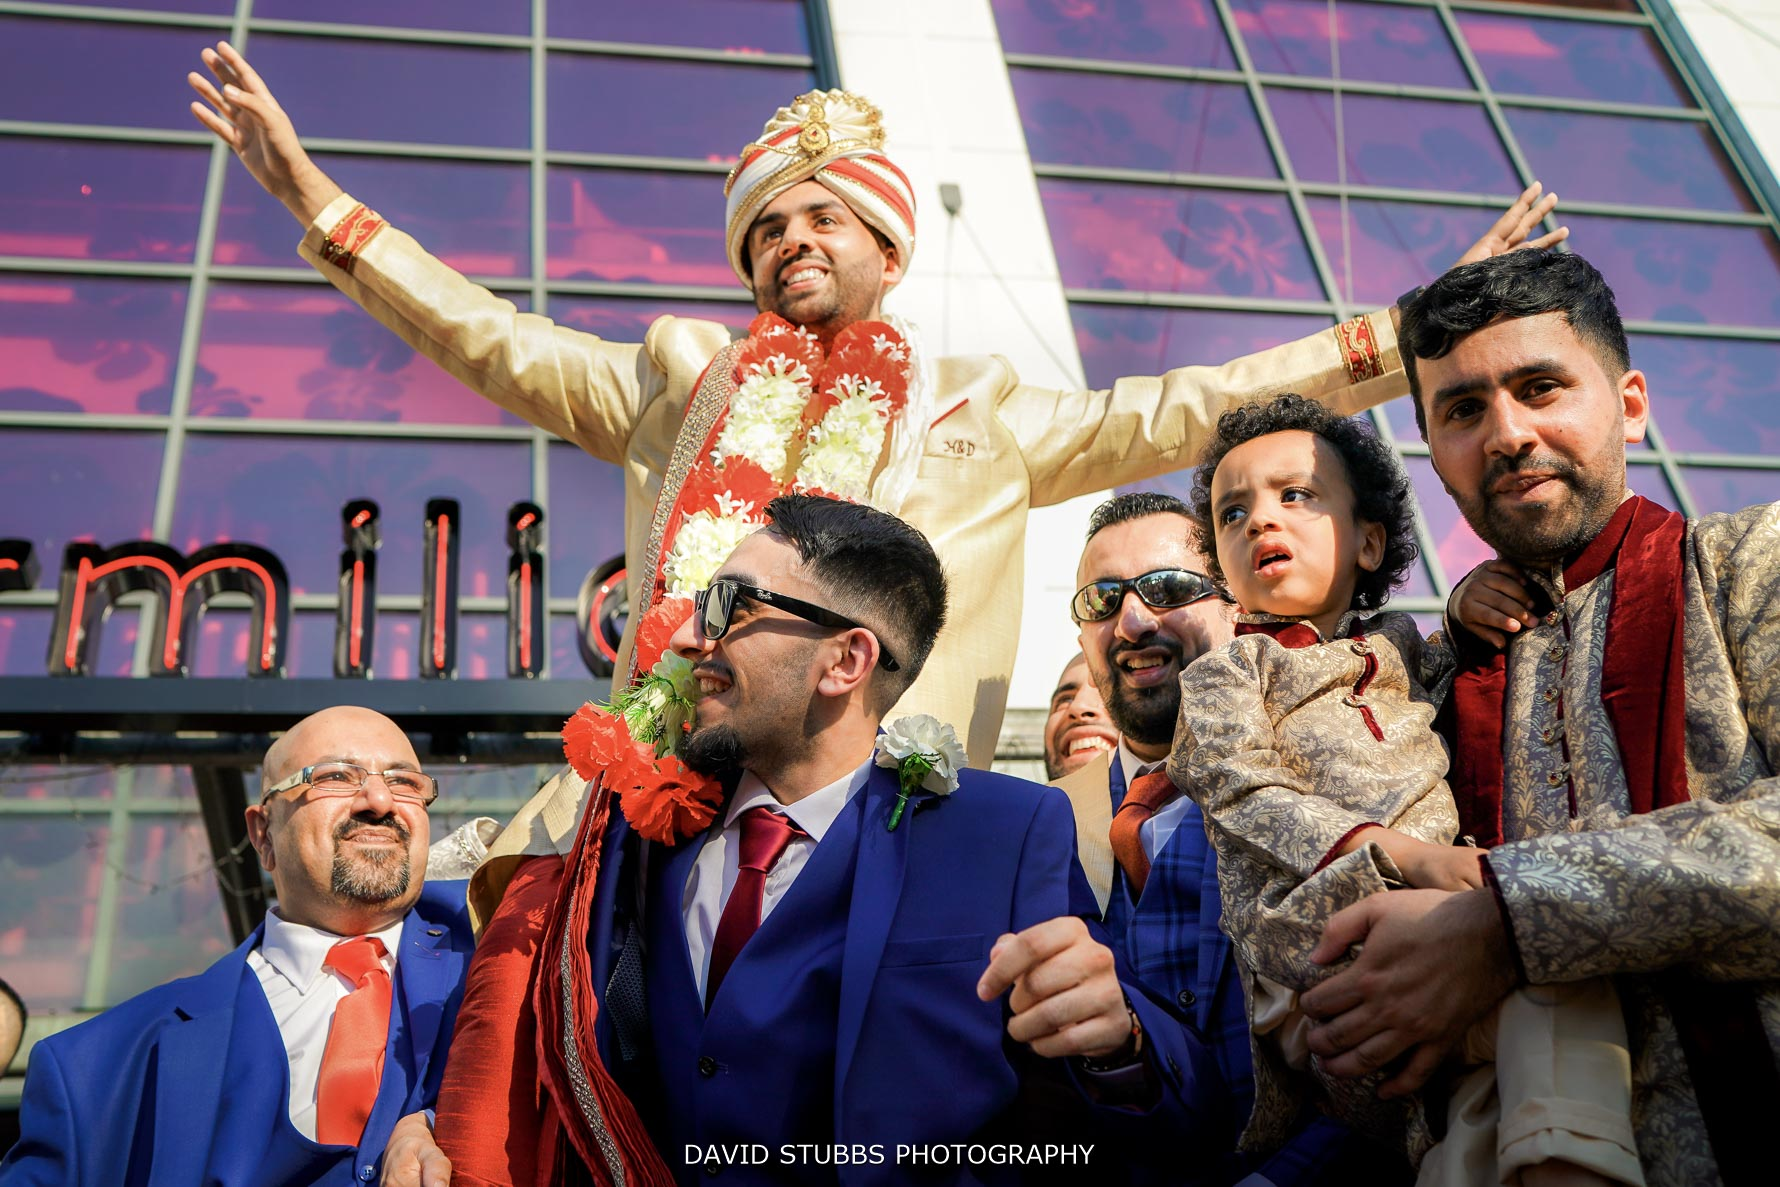 low angle of groom being held above all the groomsmen